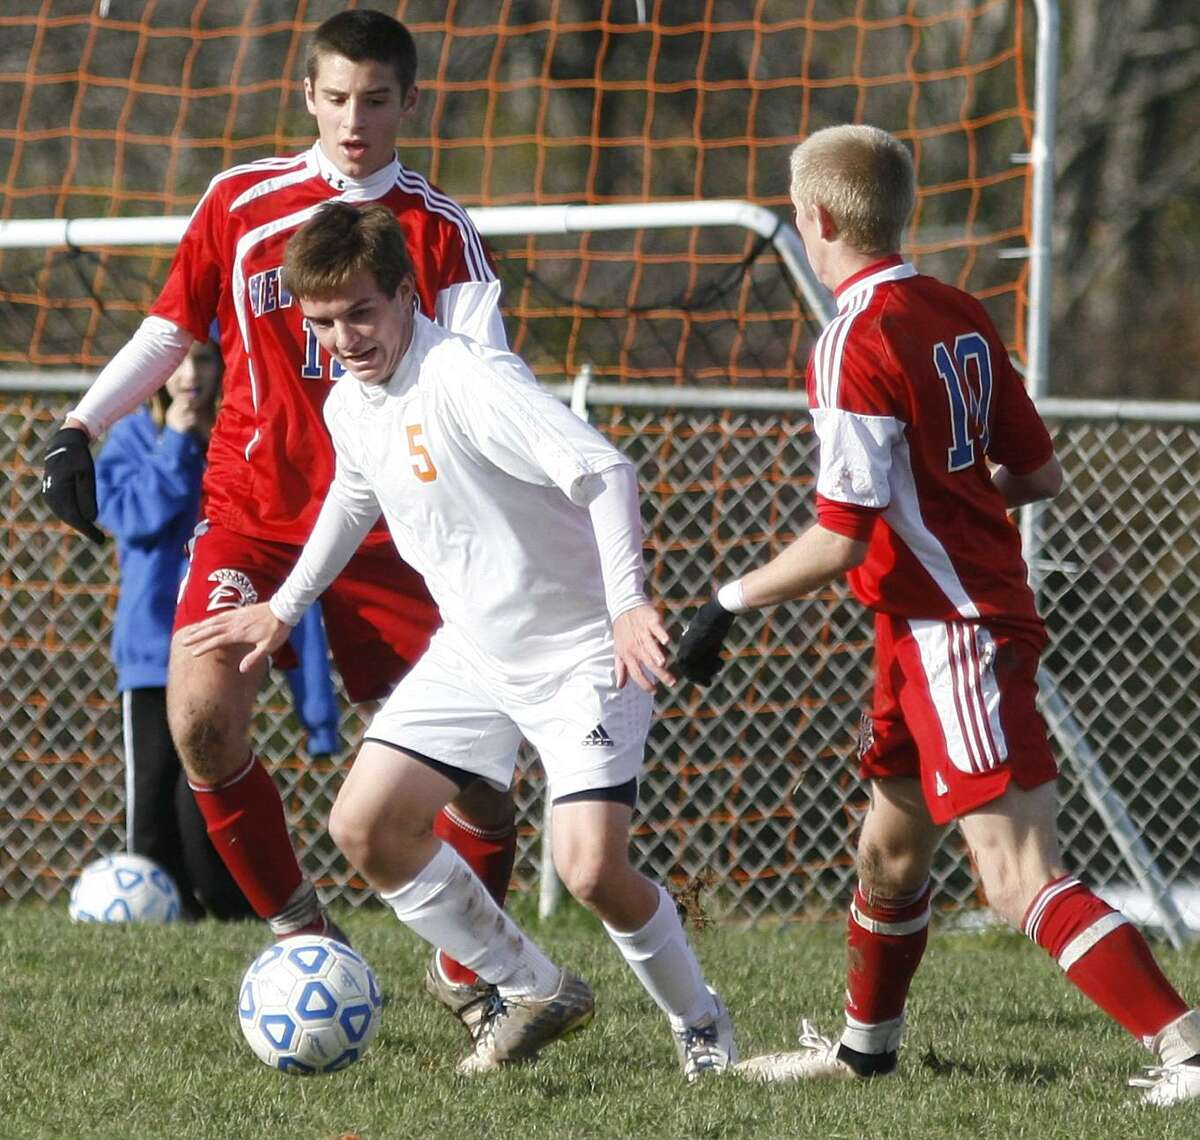 Dispatch Staff Photo by JOHN HAEGER twitter.com/oneidaphoto Oneida's Cary Reifschneider (5) looks to pass the ball as New Hartford's Ben Gilroy (12) and Luke Bogar (10) defends in the first half of the Sec III playoff match in Oneida on Friday, Oct. 28, 2011. Oneida won the match 2-1 to advance to the next round.